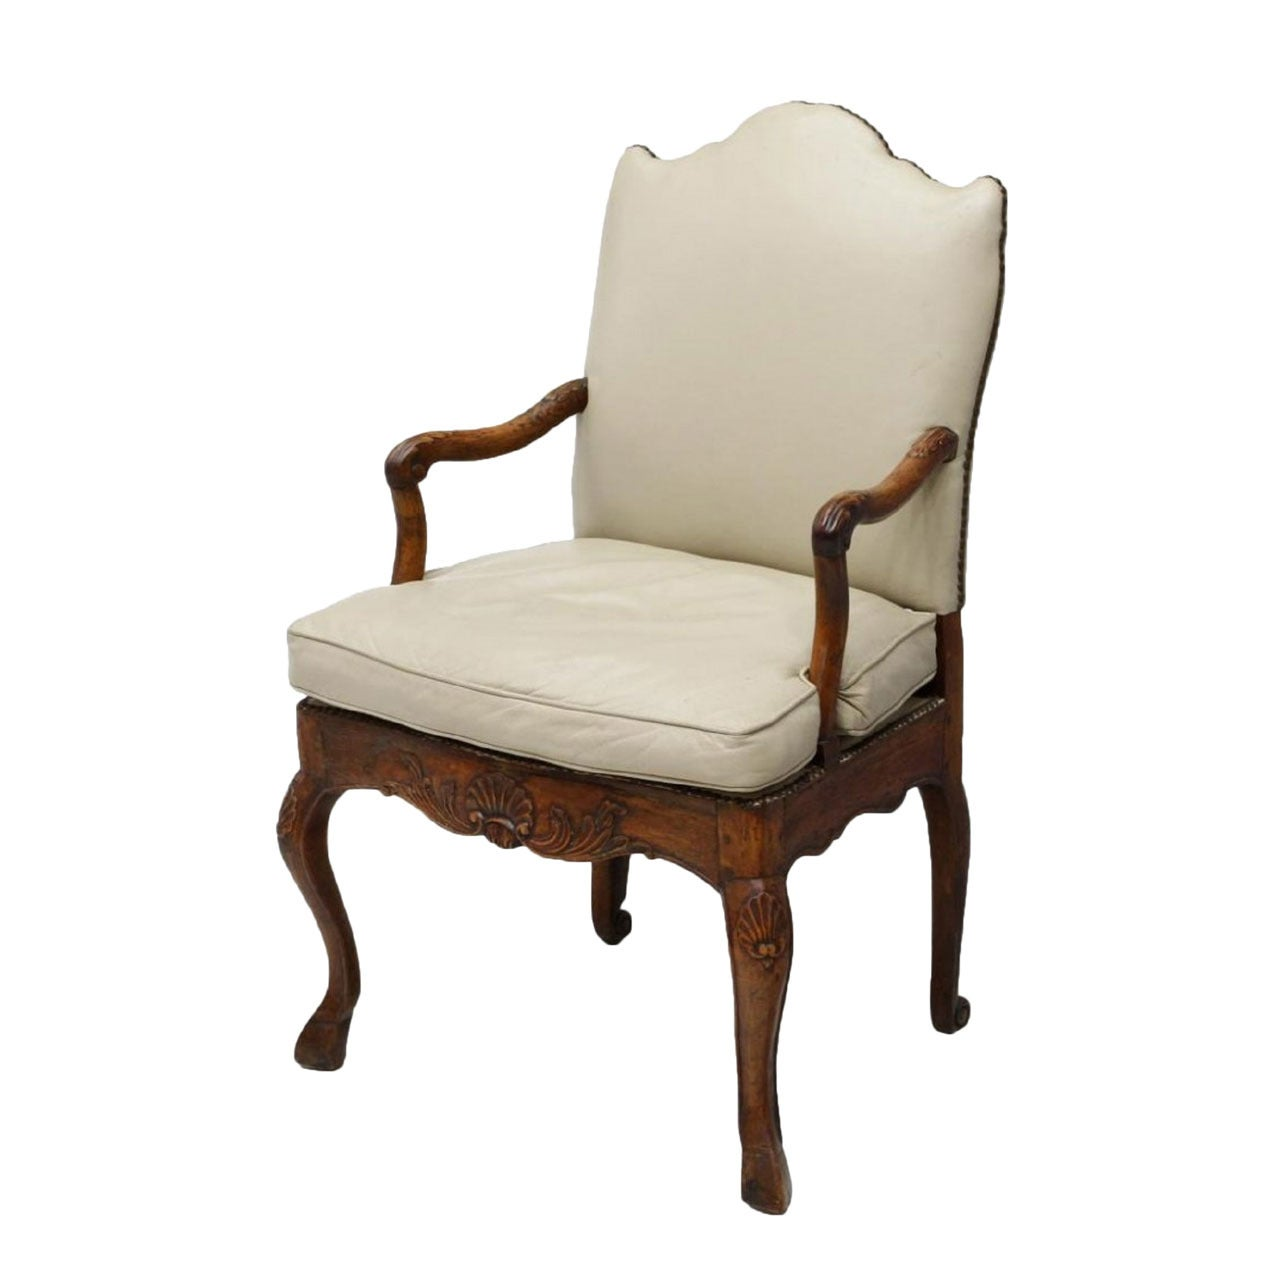 French Louis XV Style Armchair on Cabriole Legs, Late 18th Century